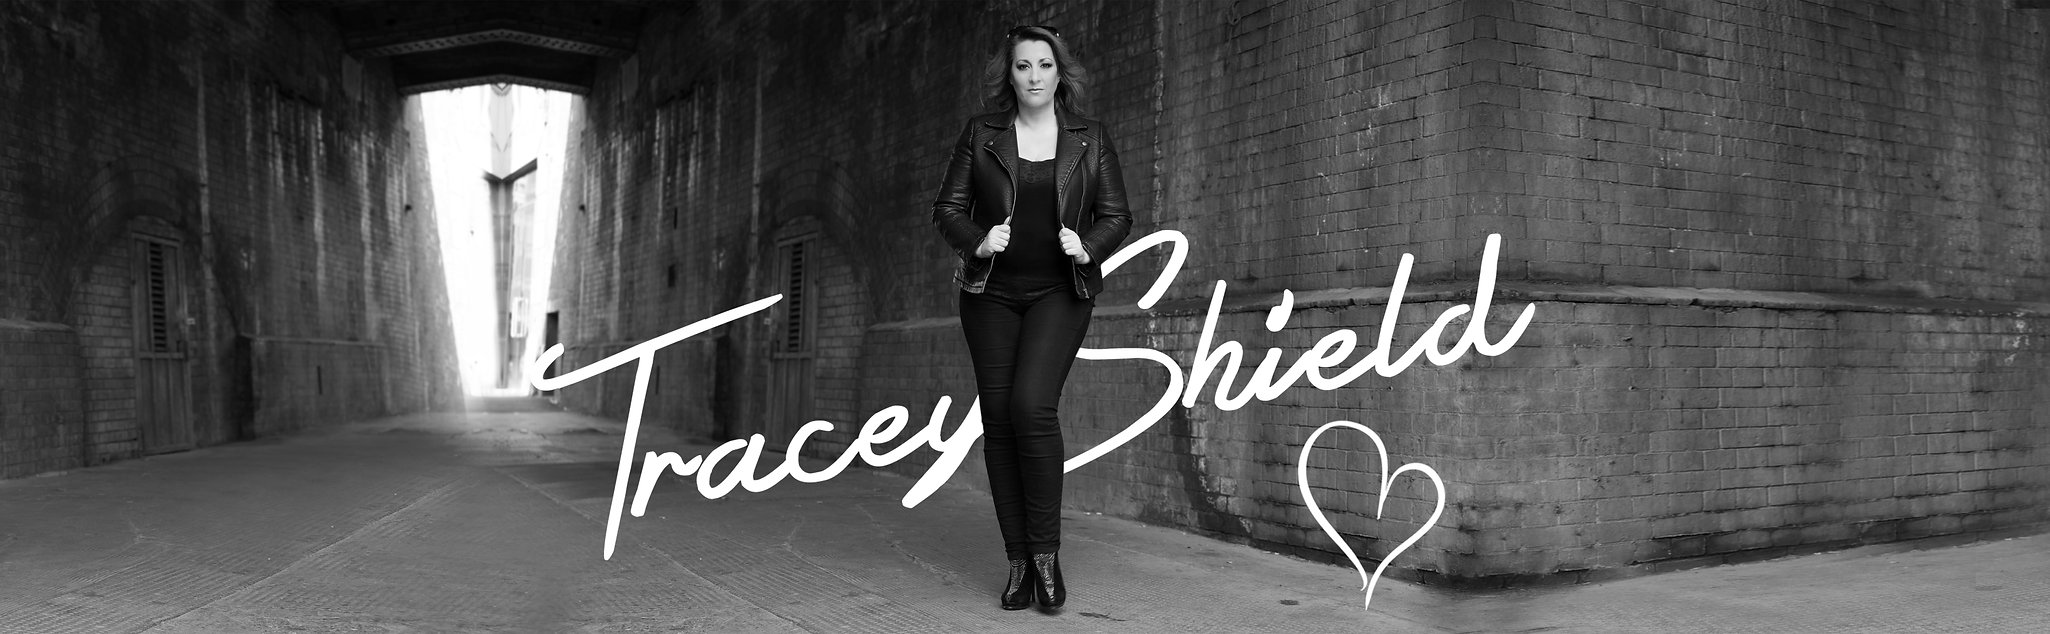 Tracey Shield